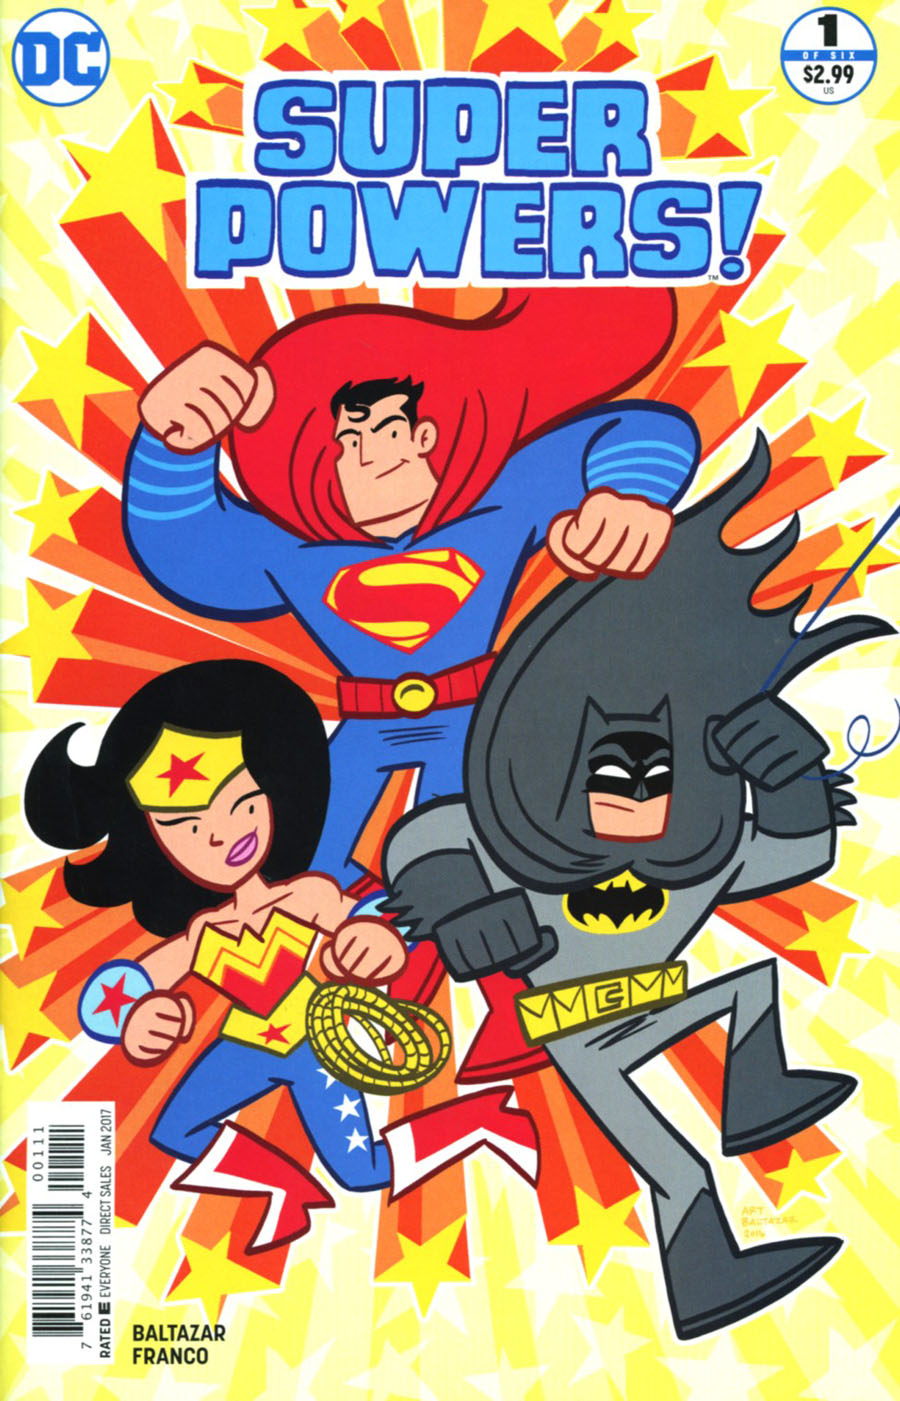 Super Powers #1